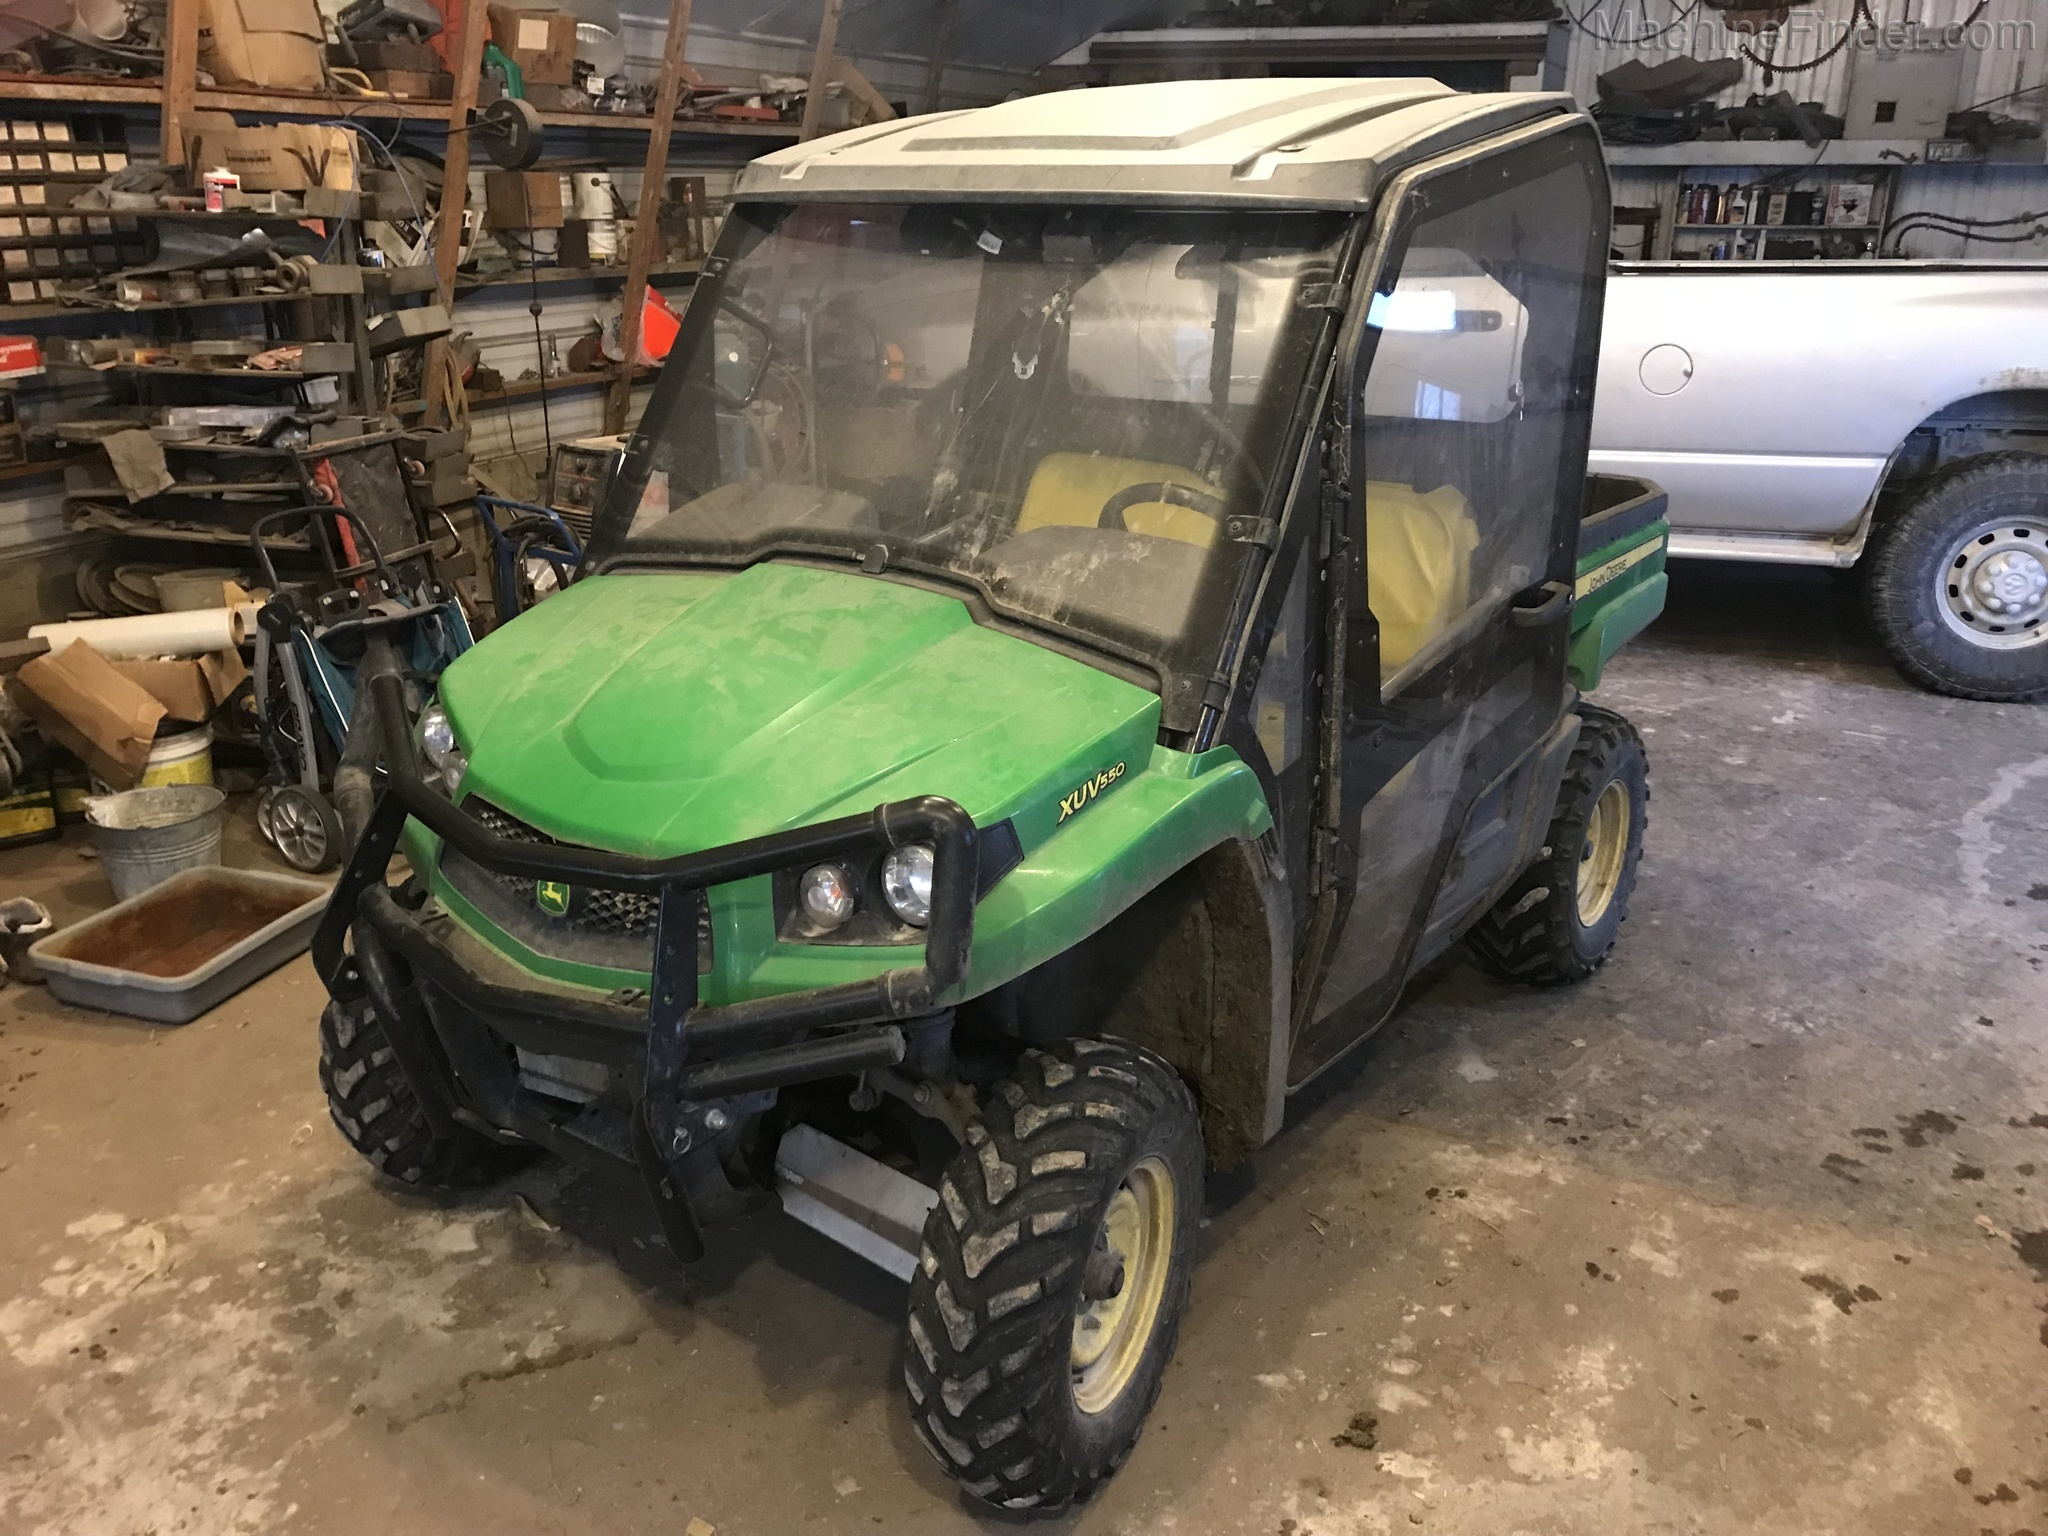 2014 John Deere XUV 550 ATVs & Gators John Deere MachineFinder